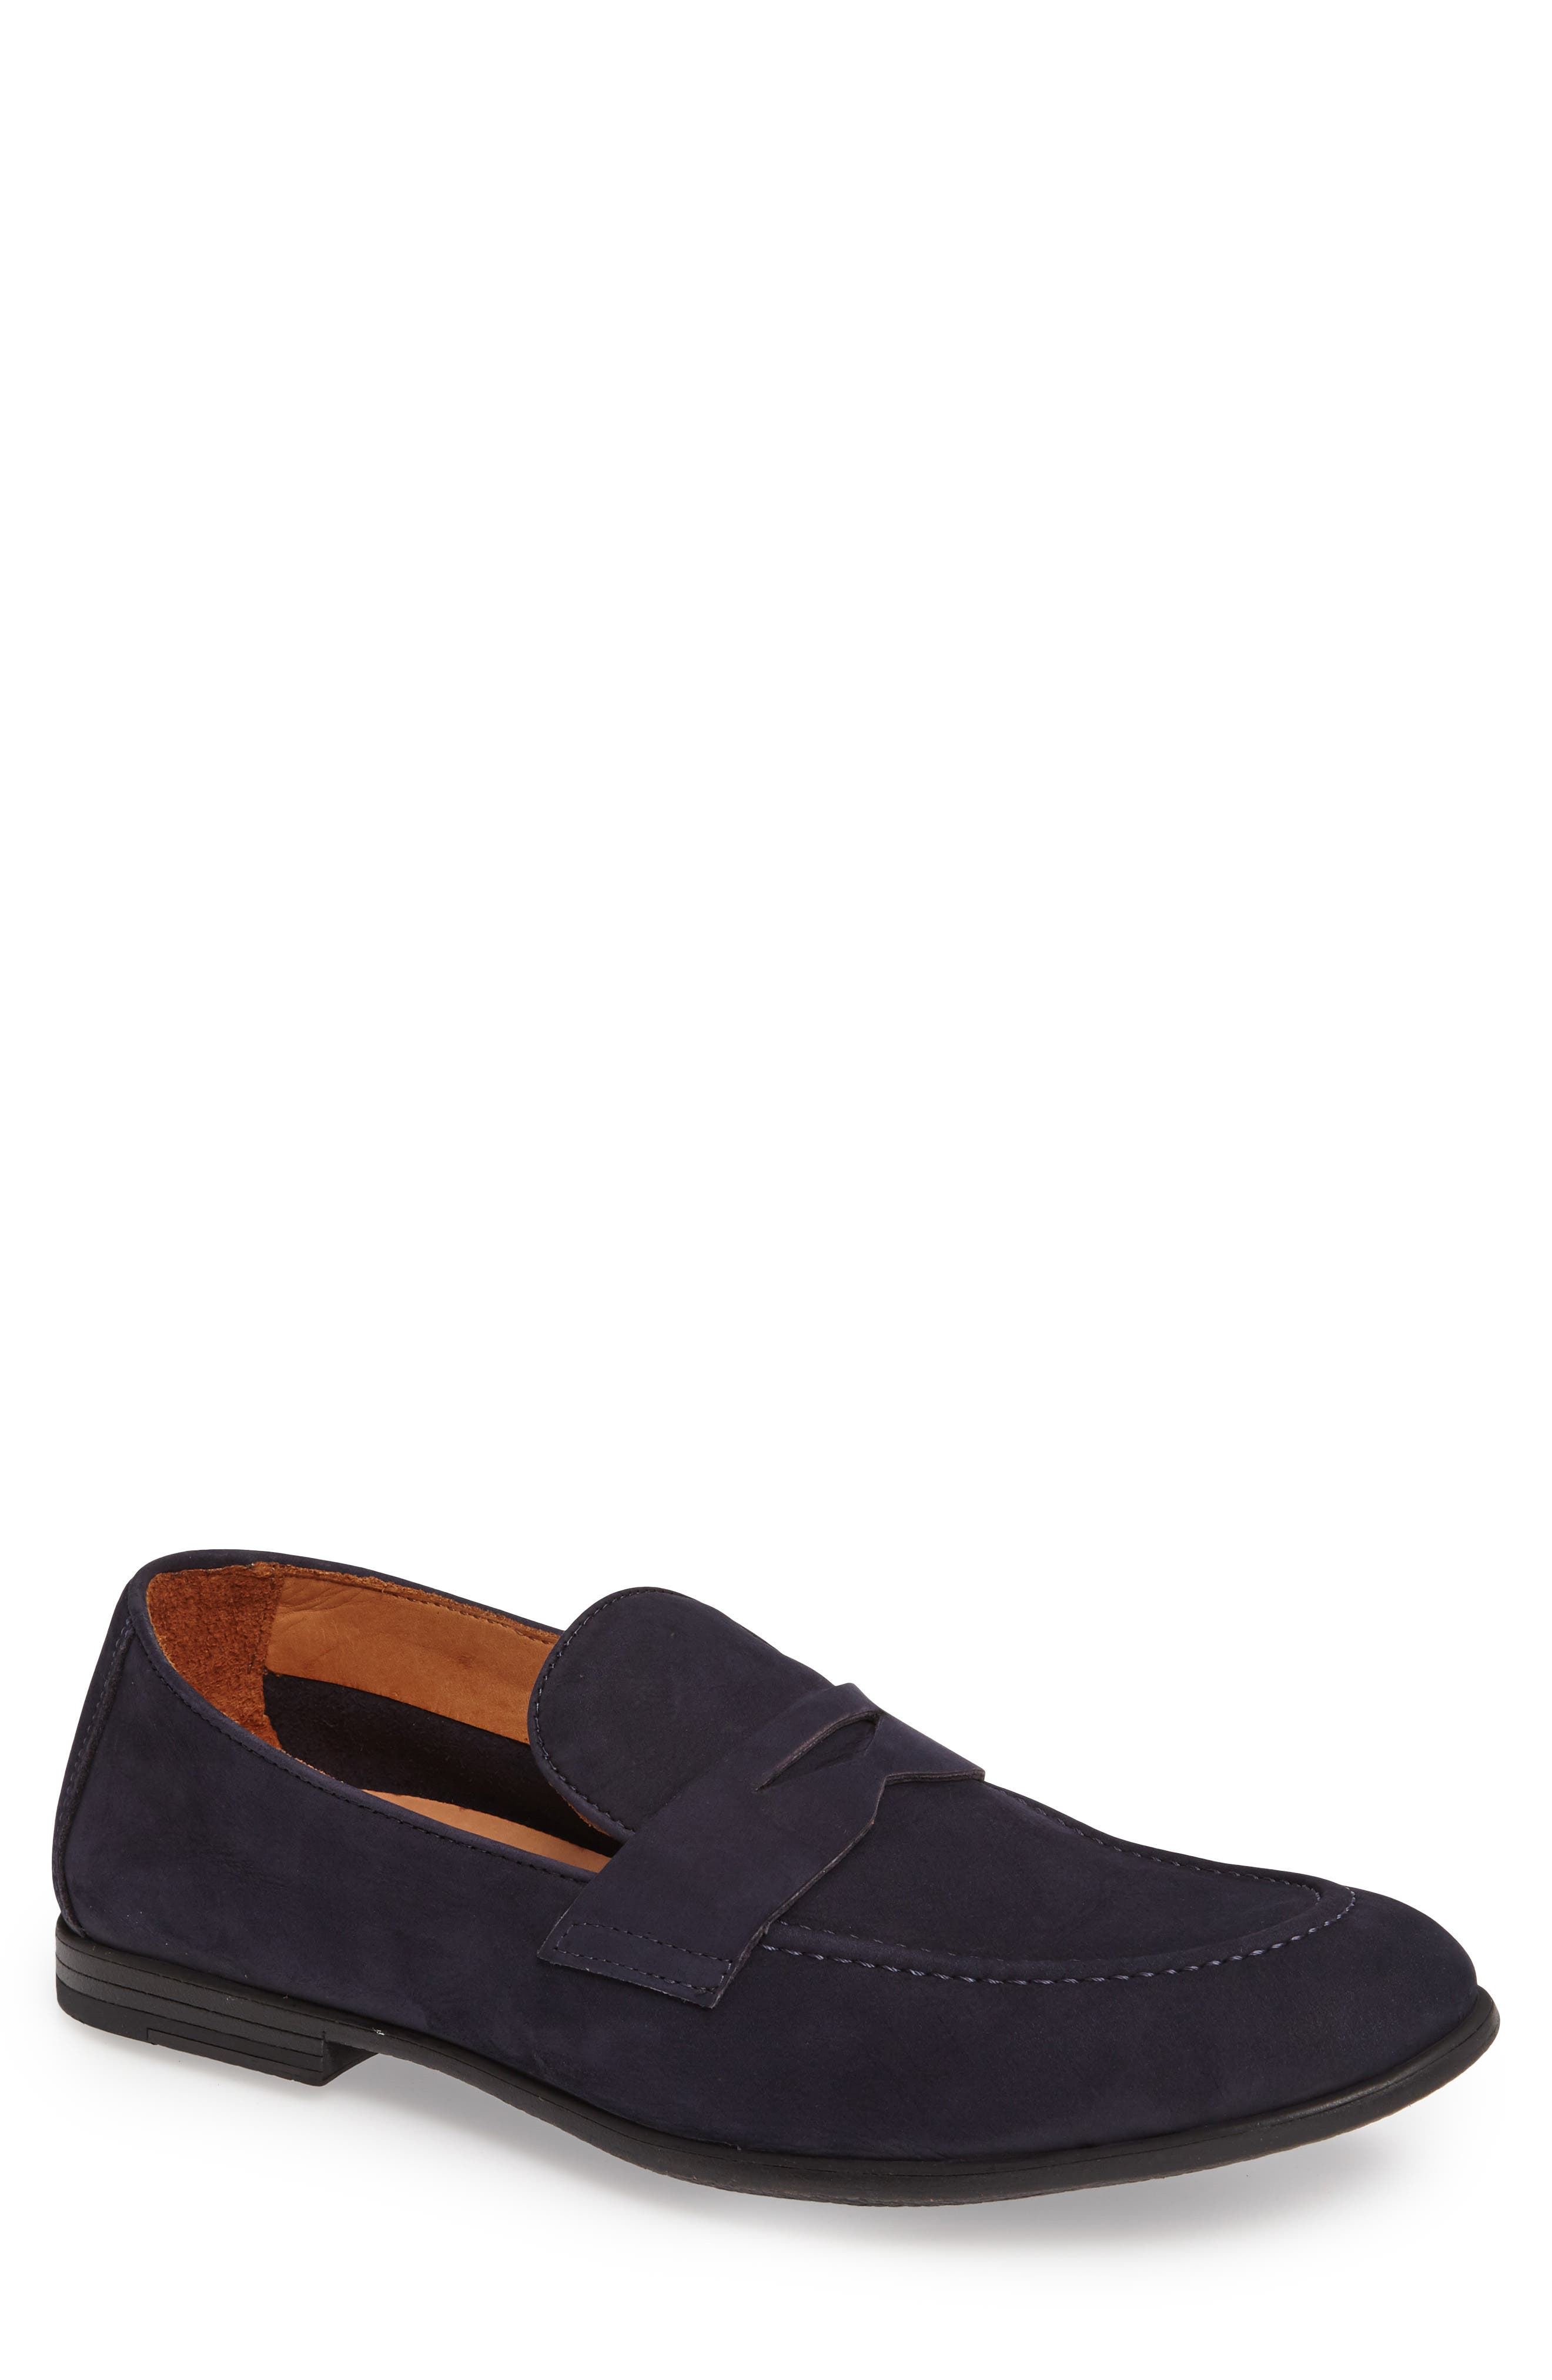 Dillon Penny Loafer,                         Main,                         color, Marino Leather